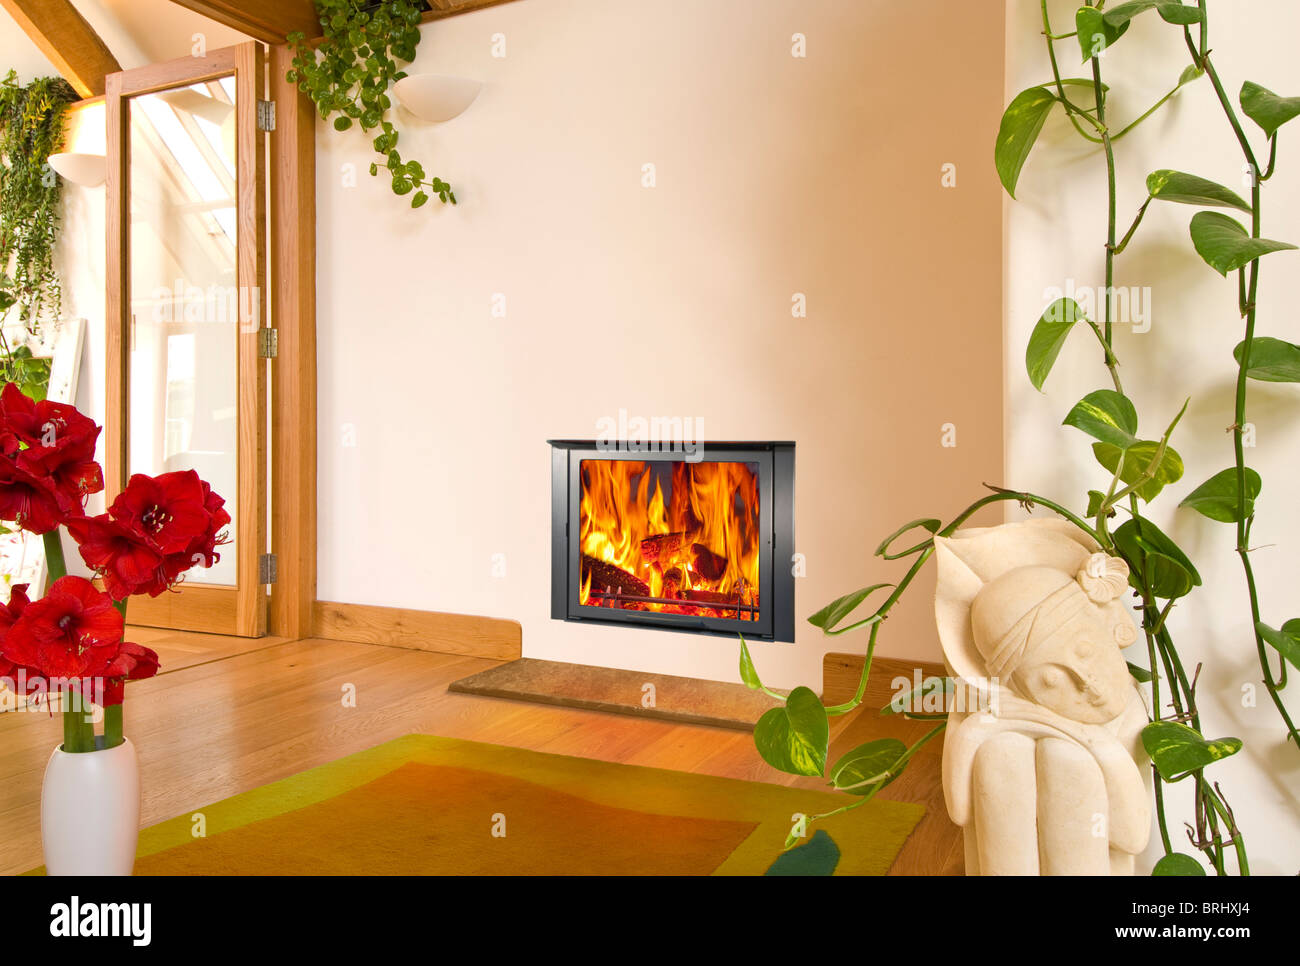 An Aquatherm F21B insert wood burning stove in a modern interior - Stock Image